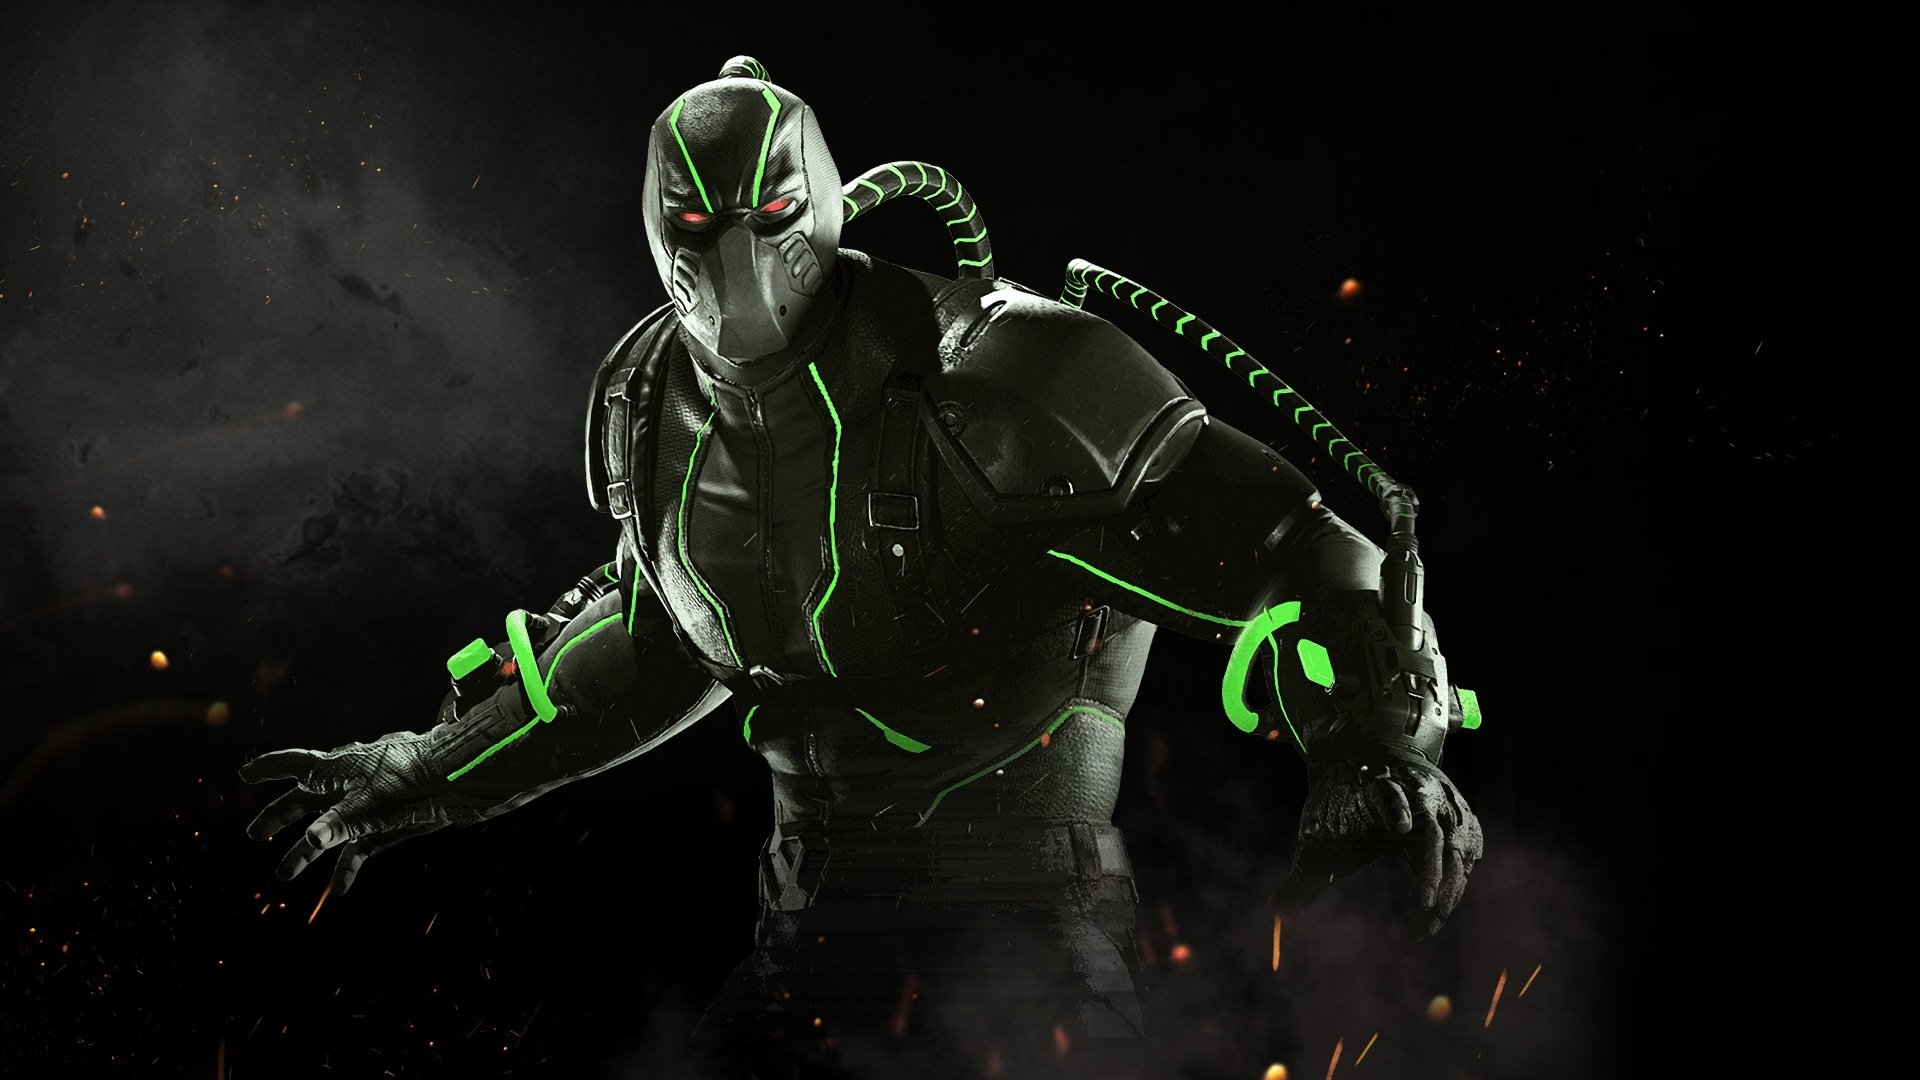 Bane hd wallpaper background image 1920x1080 id - Bane wallpaper ...